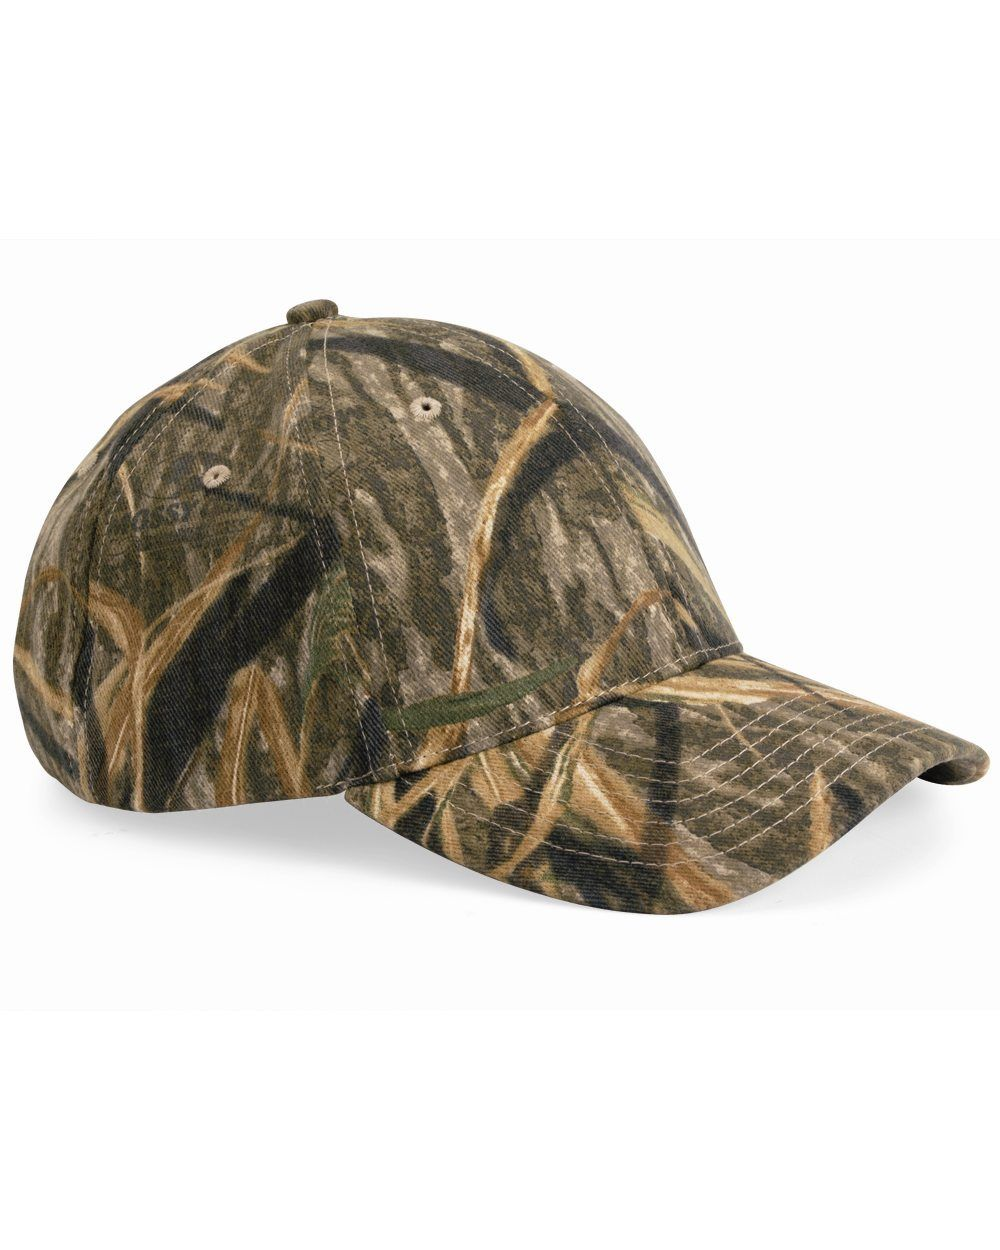 Kati Structured Mid Profile Mossy Oak Camouflage Cap Mens Hat LC10